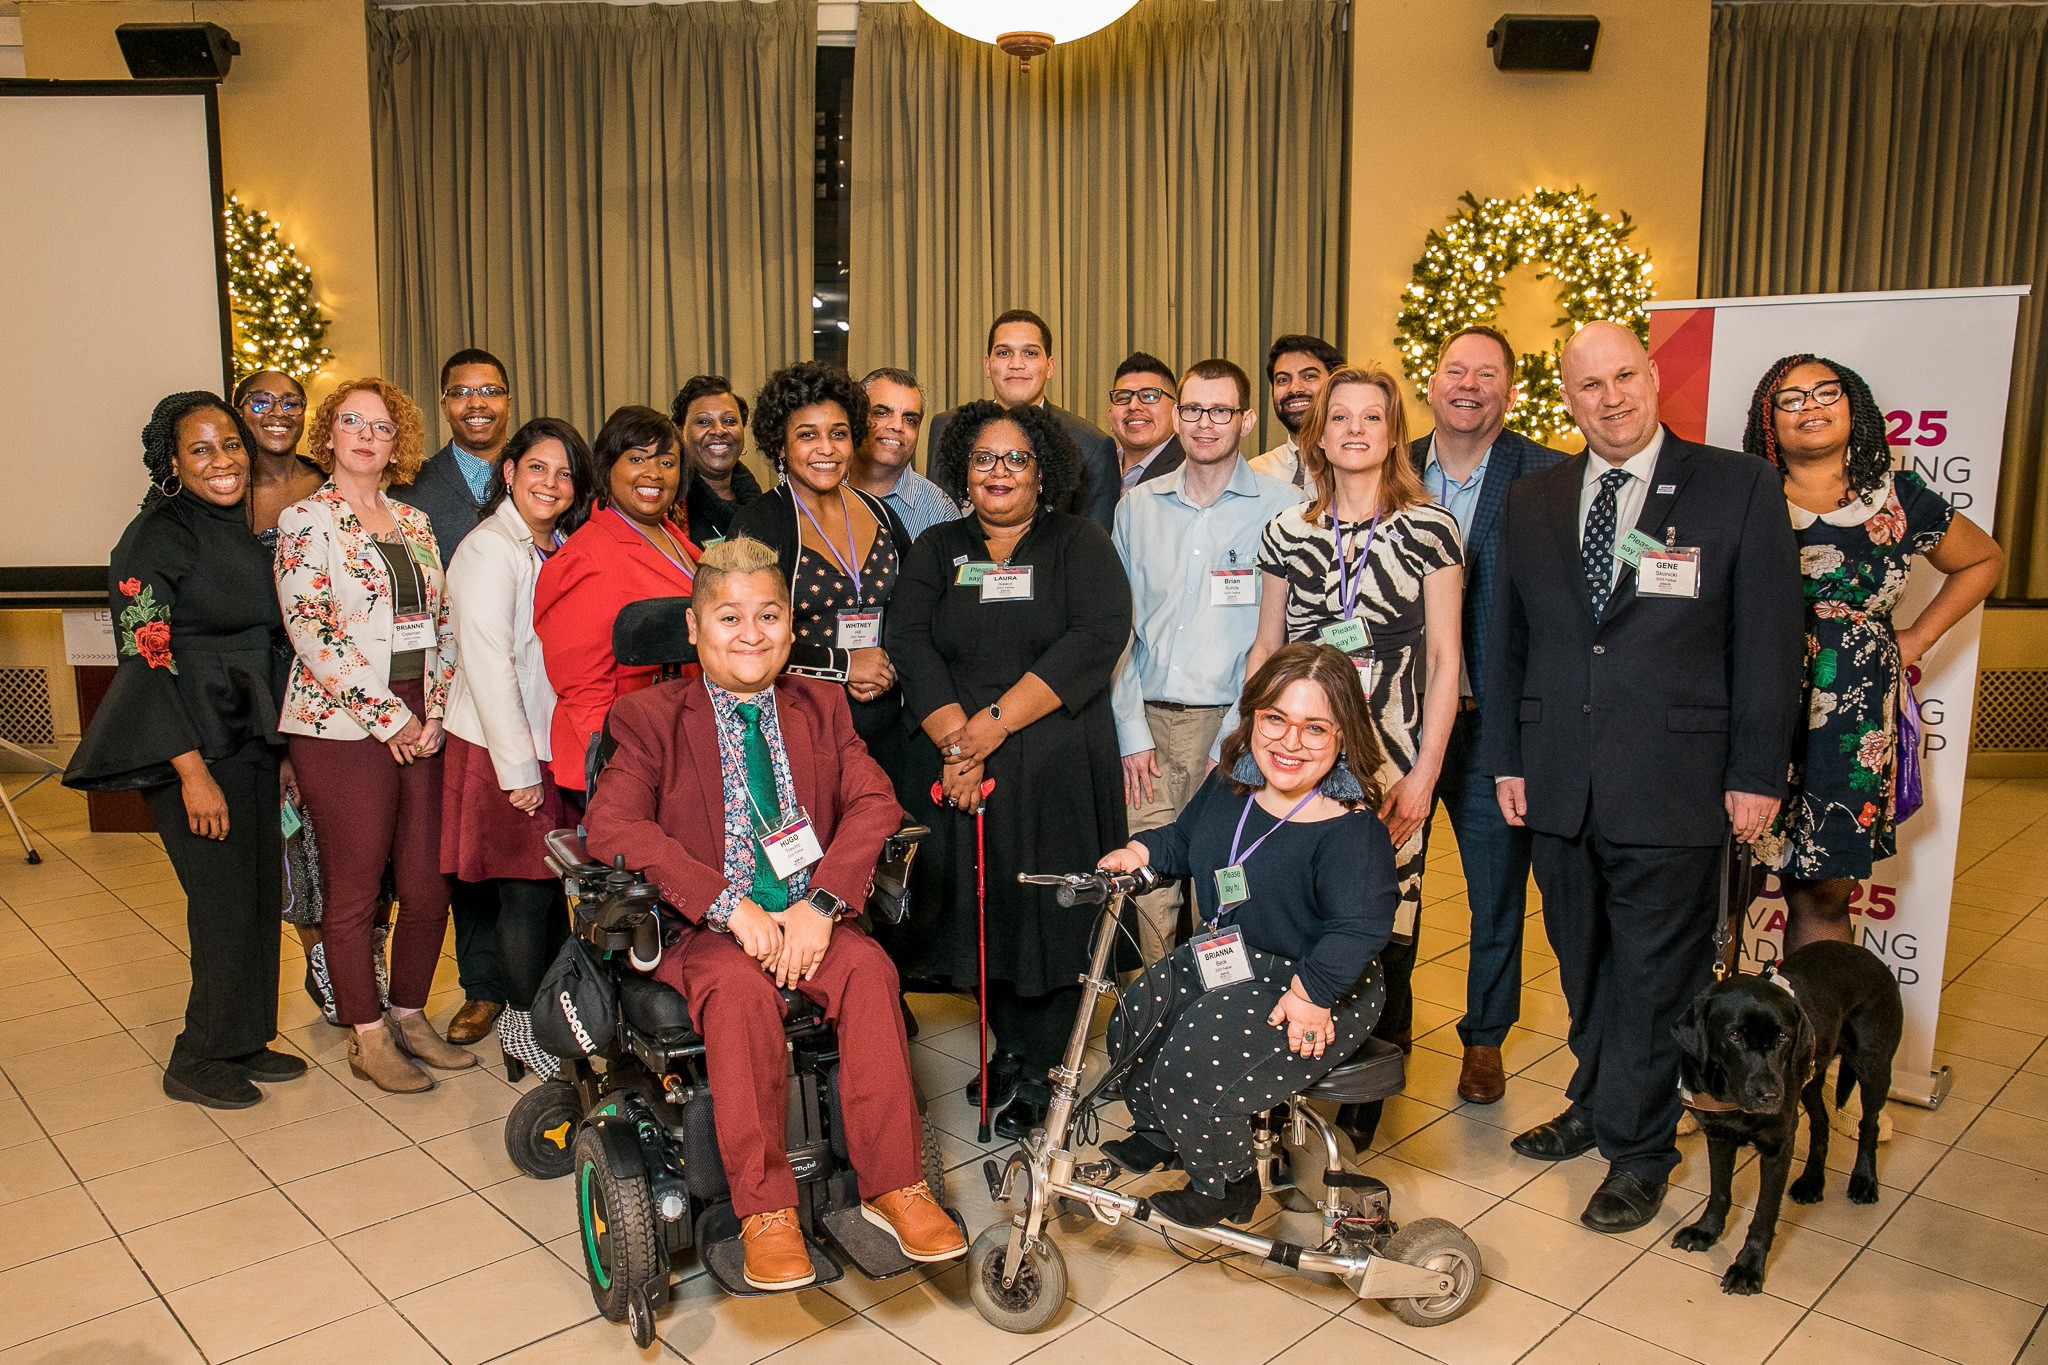 A group photo of about 20 people with visible and invisible disabilities pose with State Senator Robert Peters.